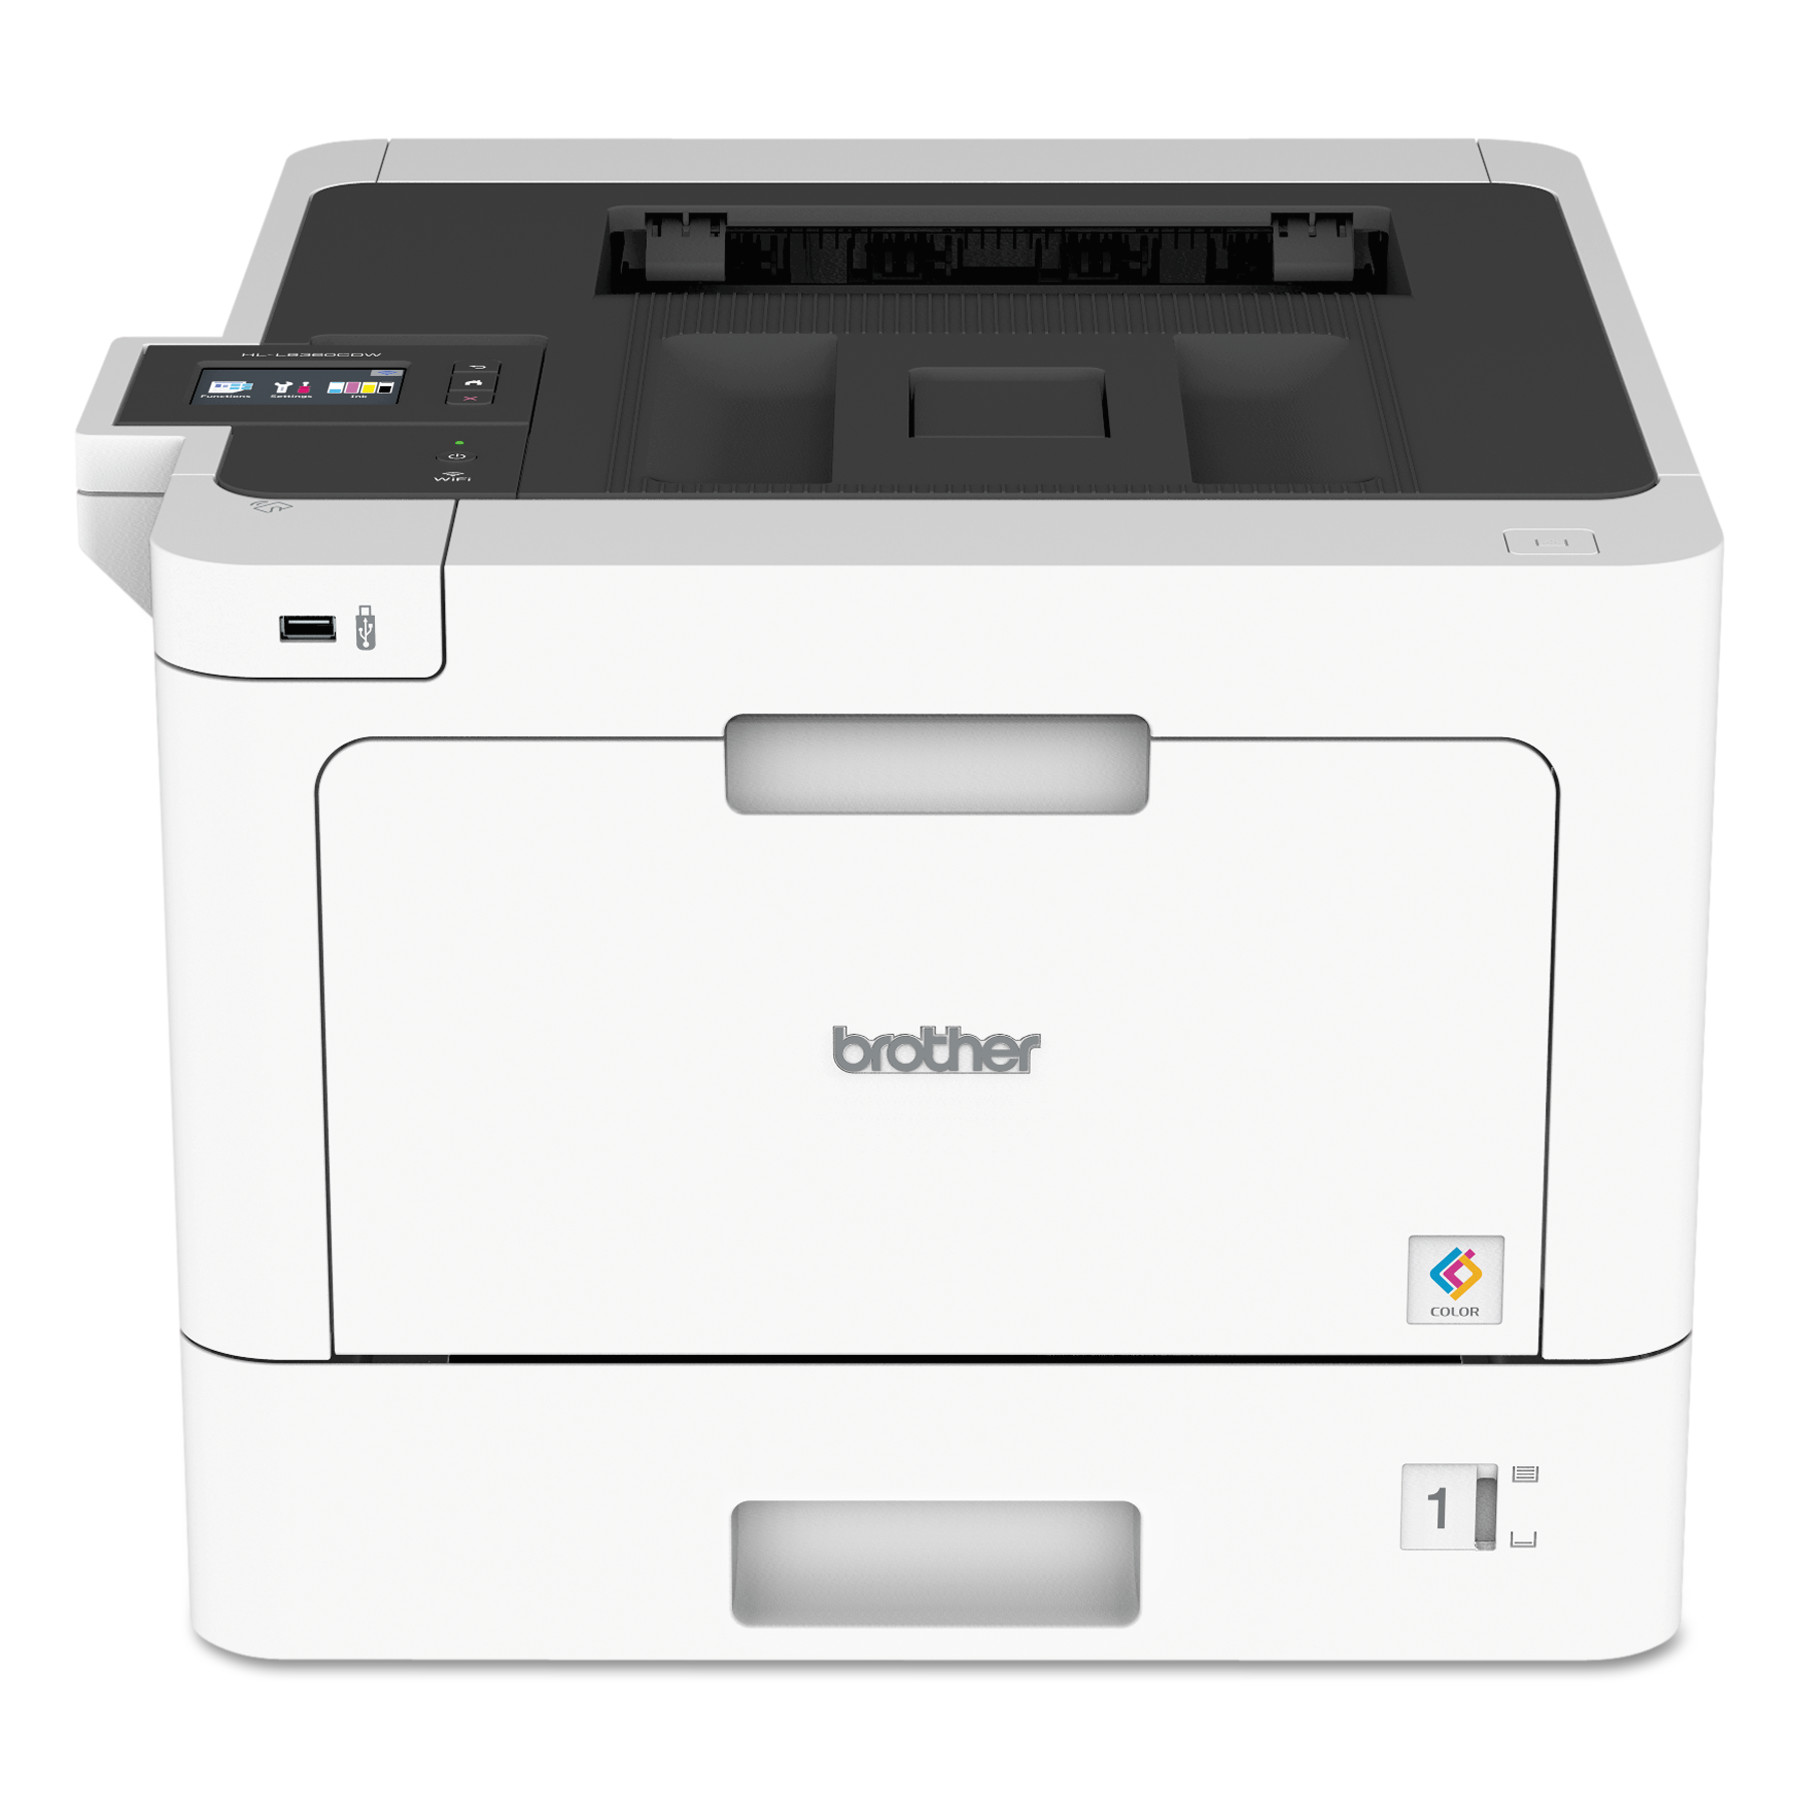 Brother HL-L8360CDW Business Color Laser Printer, Duplex Printing by Brother